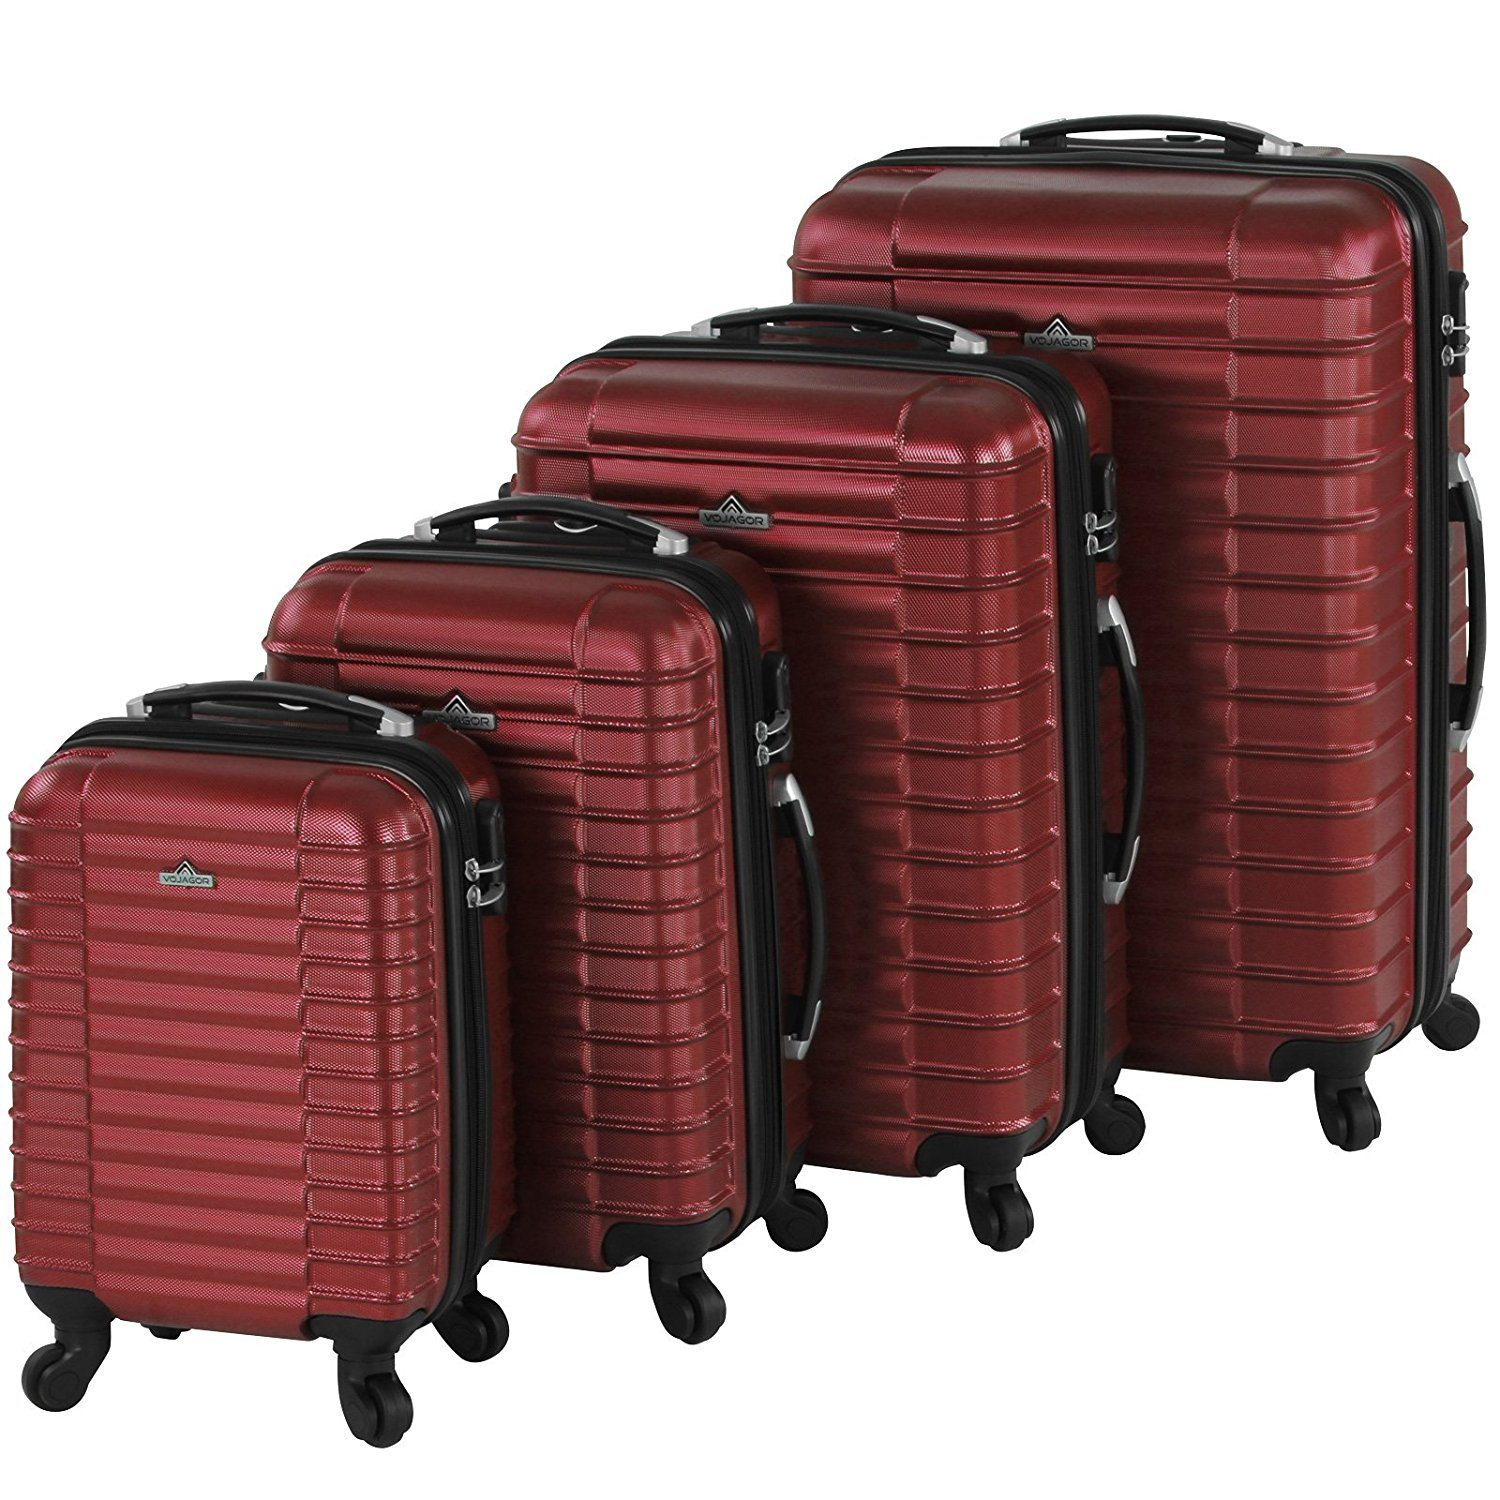 vojagor hard shell trolley suitcase uk review luggage news. Black Bedroom Furniture Sets. Home Design Ideas